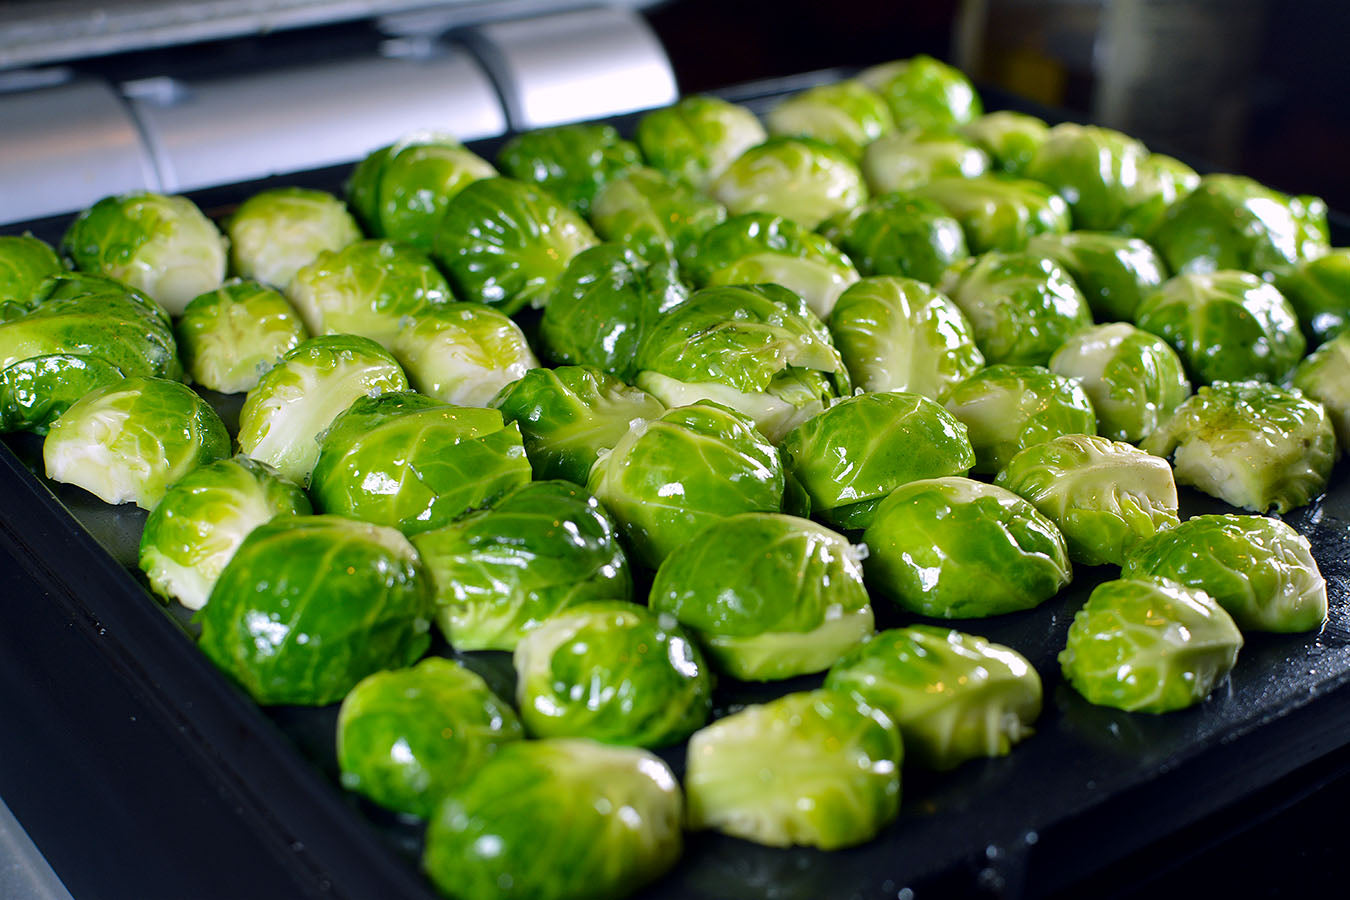 Roasted Brussels Sprouts with Lemon, Parsley and Olive Oil perfect on cinder grill  indoor precision cooker